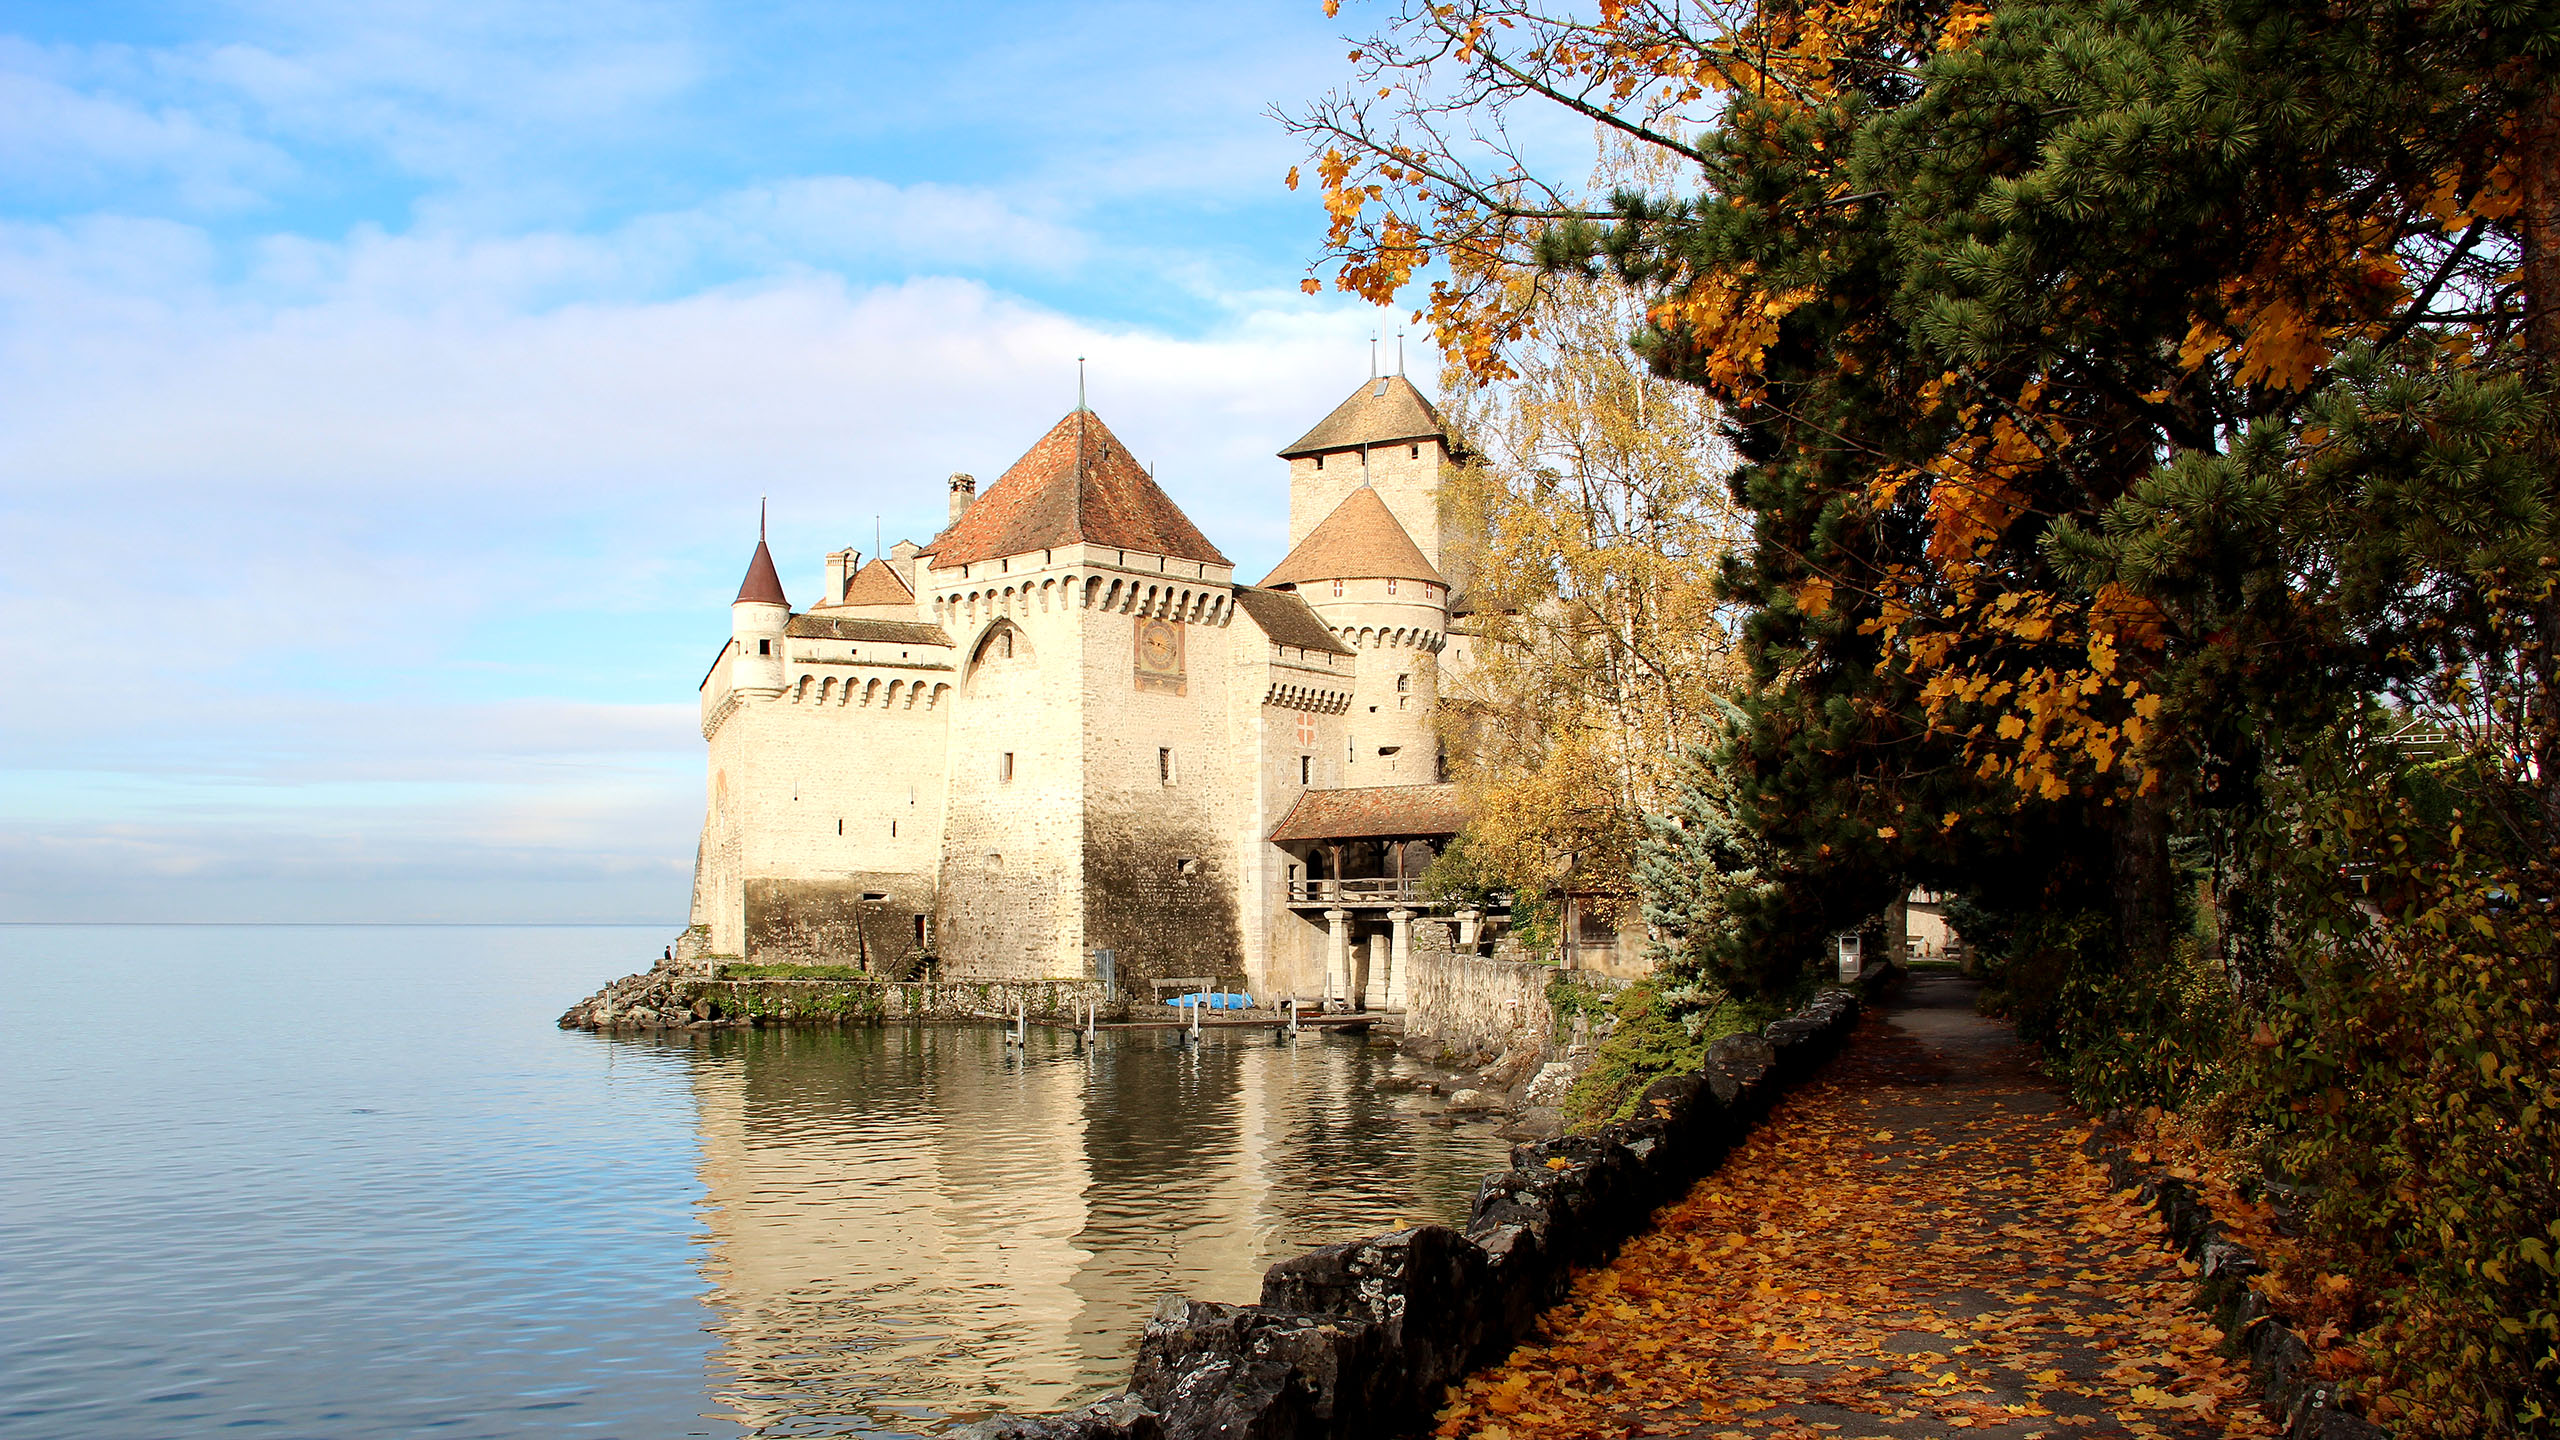 Château de Chillon,things to do in Montreux